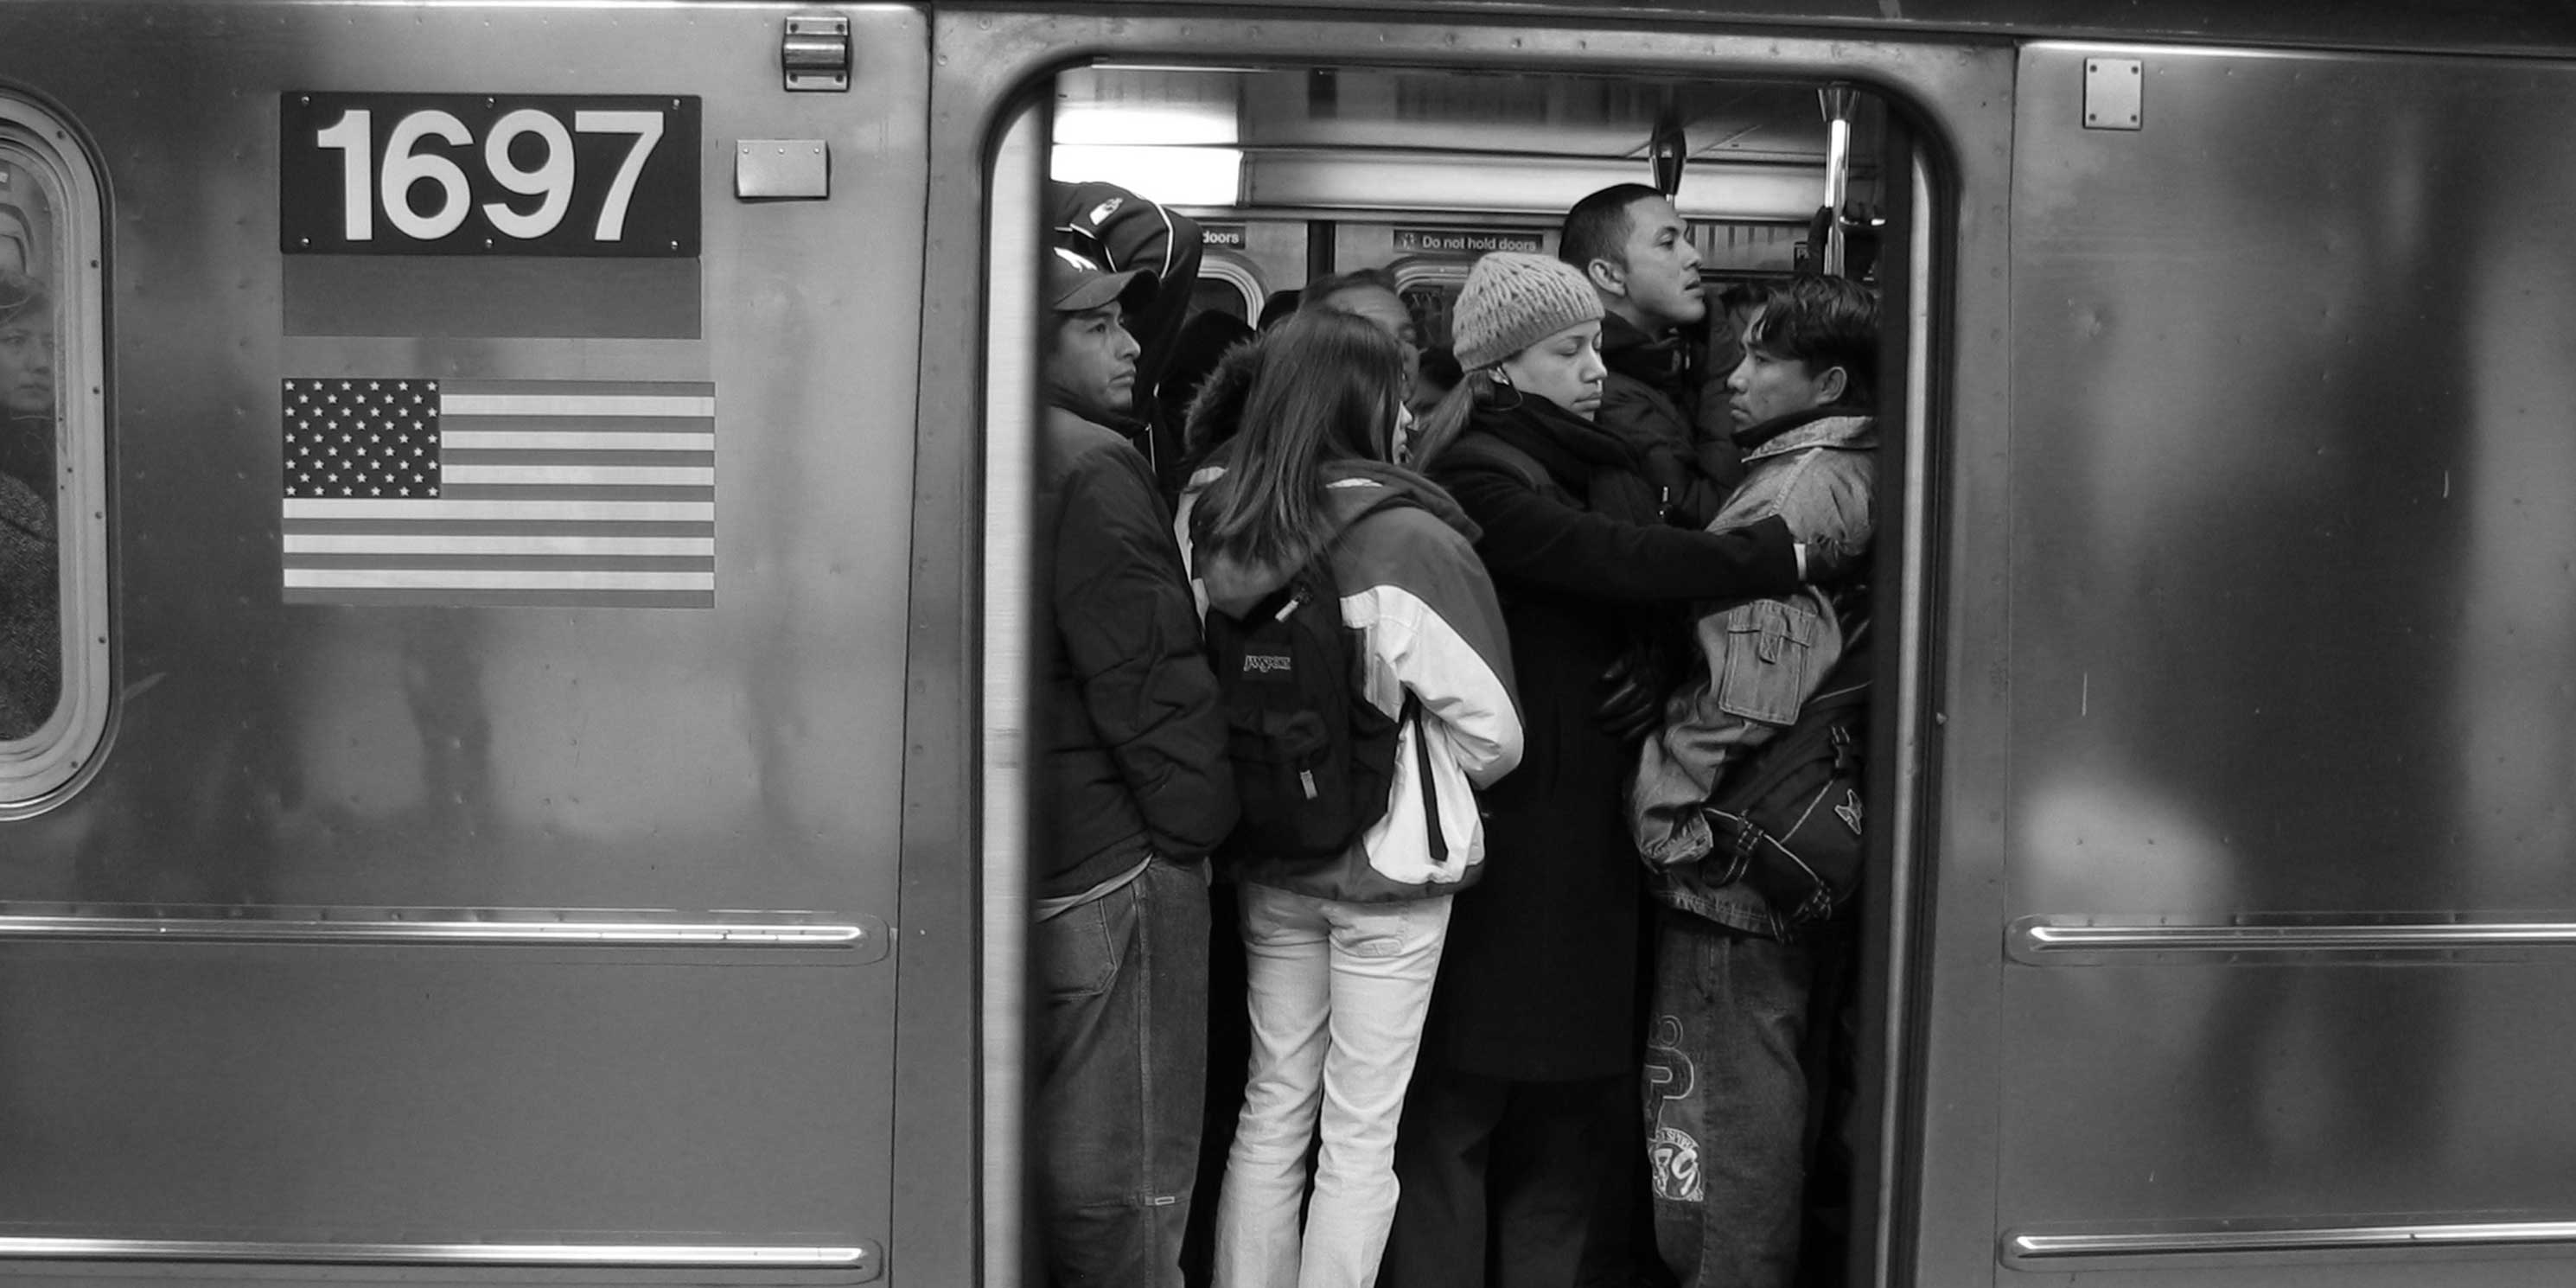 Crowded subway car on Queens-bound 7 train. Photo: Wikimedia Commons, Daniel Schwen.